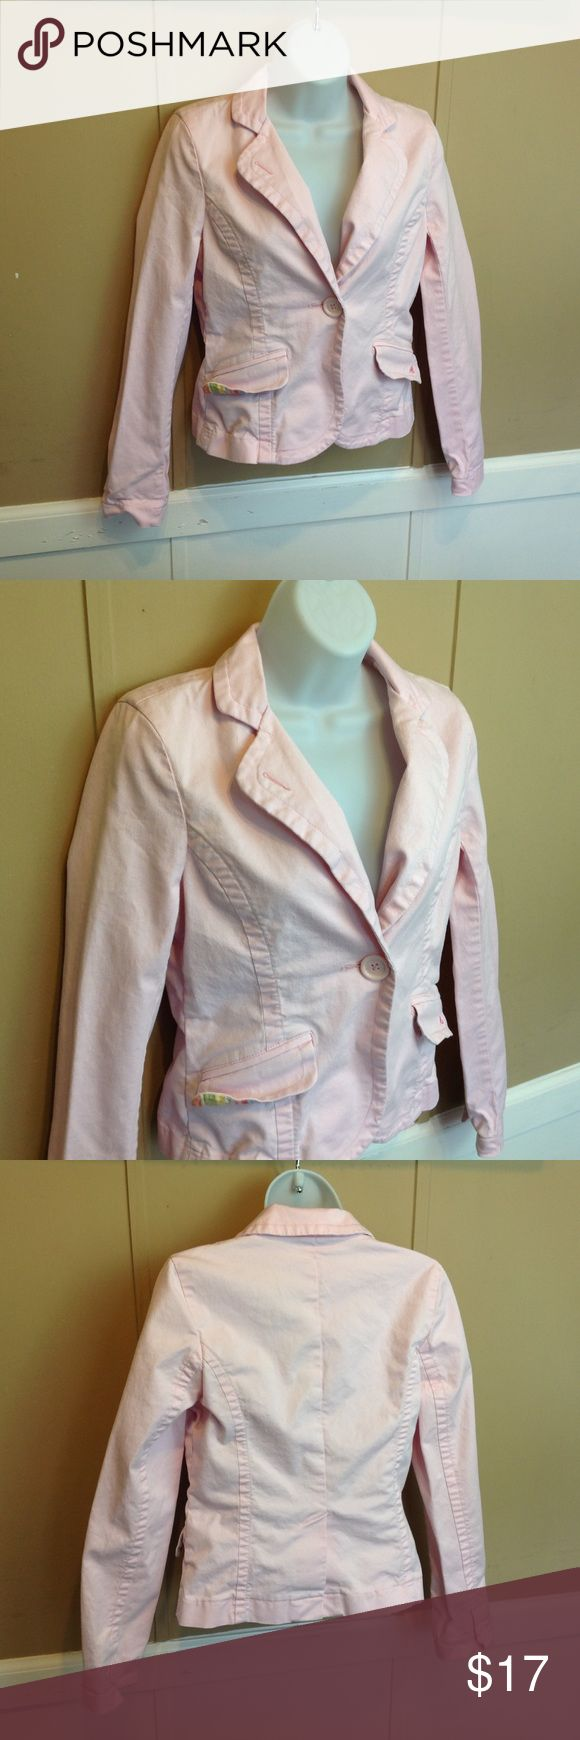 "American Eagle Pastel Pink Cropped Blazer Maker: American Eagle ♥ Material: 97% Cotton 3% Spandex ♥ Color: Pastel Pink ♥ Measured Size: Pit to pit- 17"" Pit to cuff-17"" Shoulder to waist-21""  ♥ Tag Size: Small ♥ Actual Size: Small PLEASE CHECK YOUR ACTUAL MEASUREMENTS TO MAKE SURE IT IS THE RIGHT SIZE! THANKS! ♥ Condition: Great ♥ Item #: (office use only) D    Follow us on Instagram and facebook for coupon codes!  INSTAGRAM-thehausofvintage1984 Facebook- intergalactic haus of vintage 1984 or…"